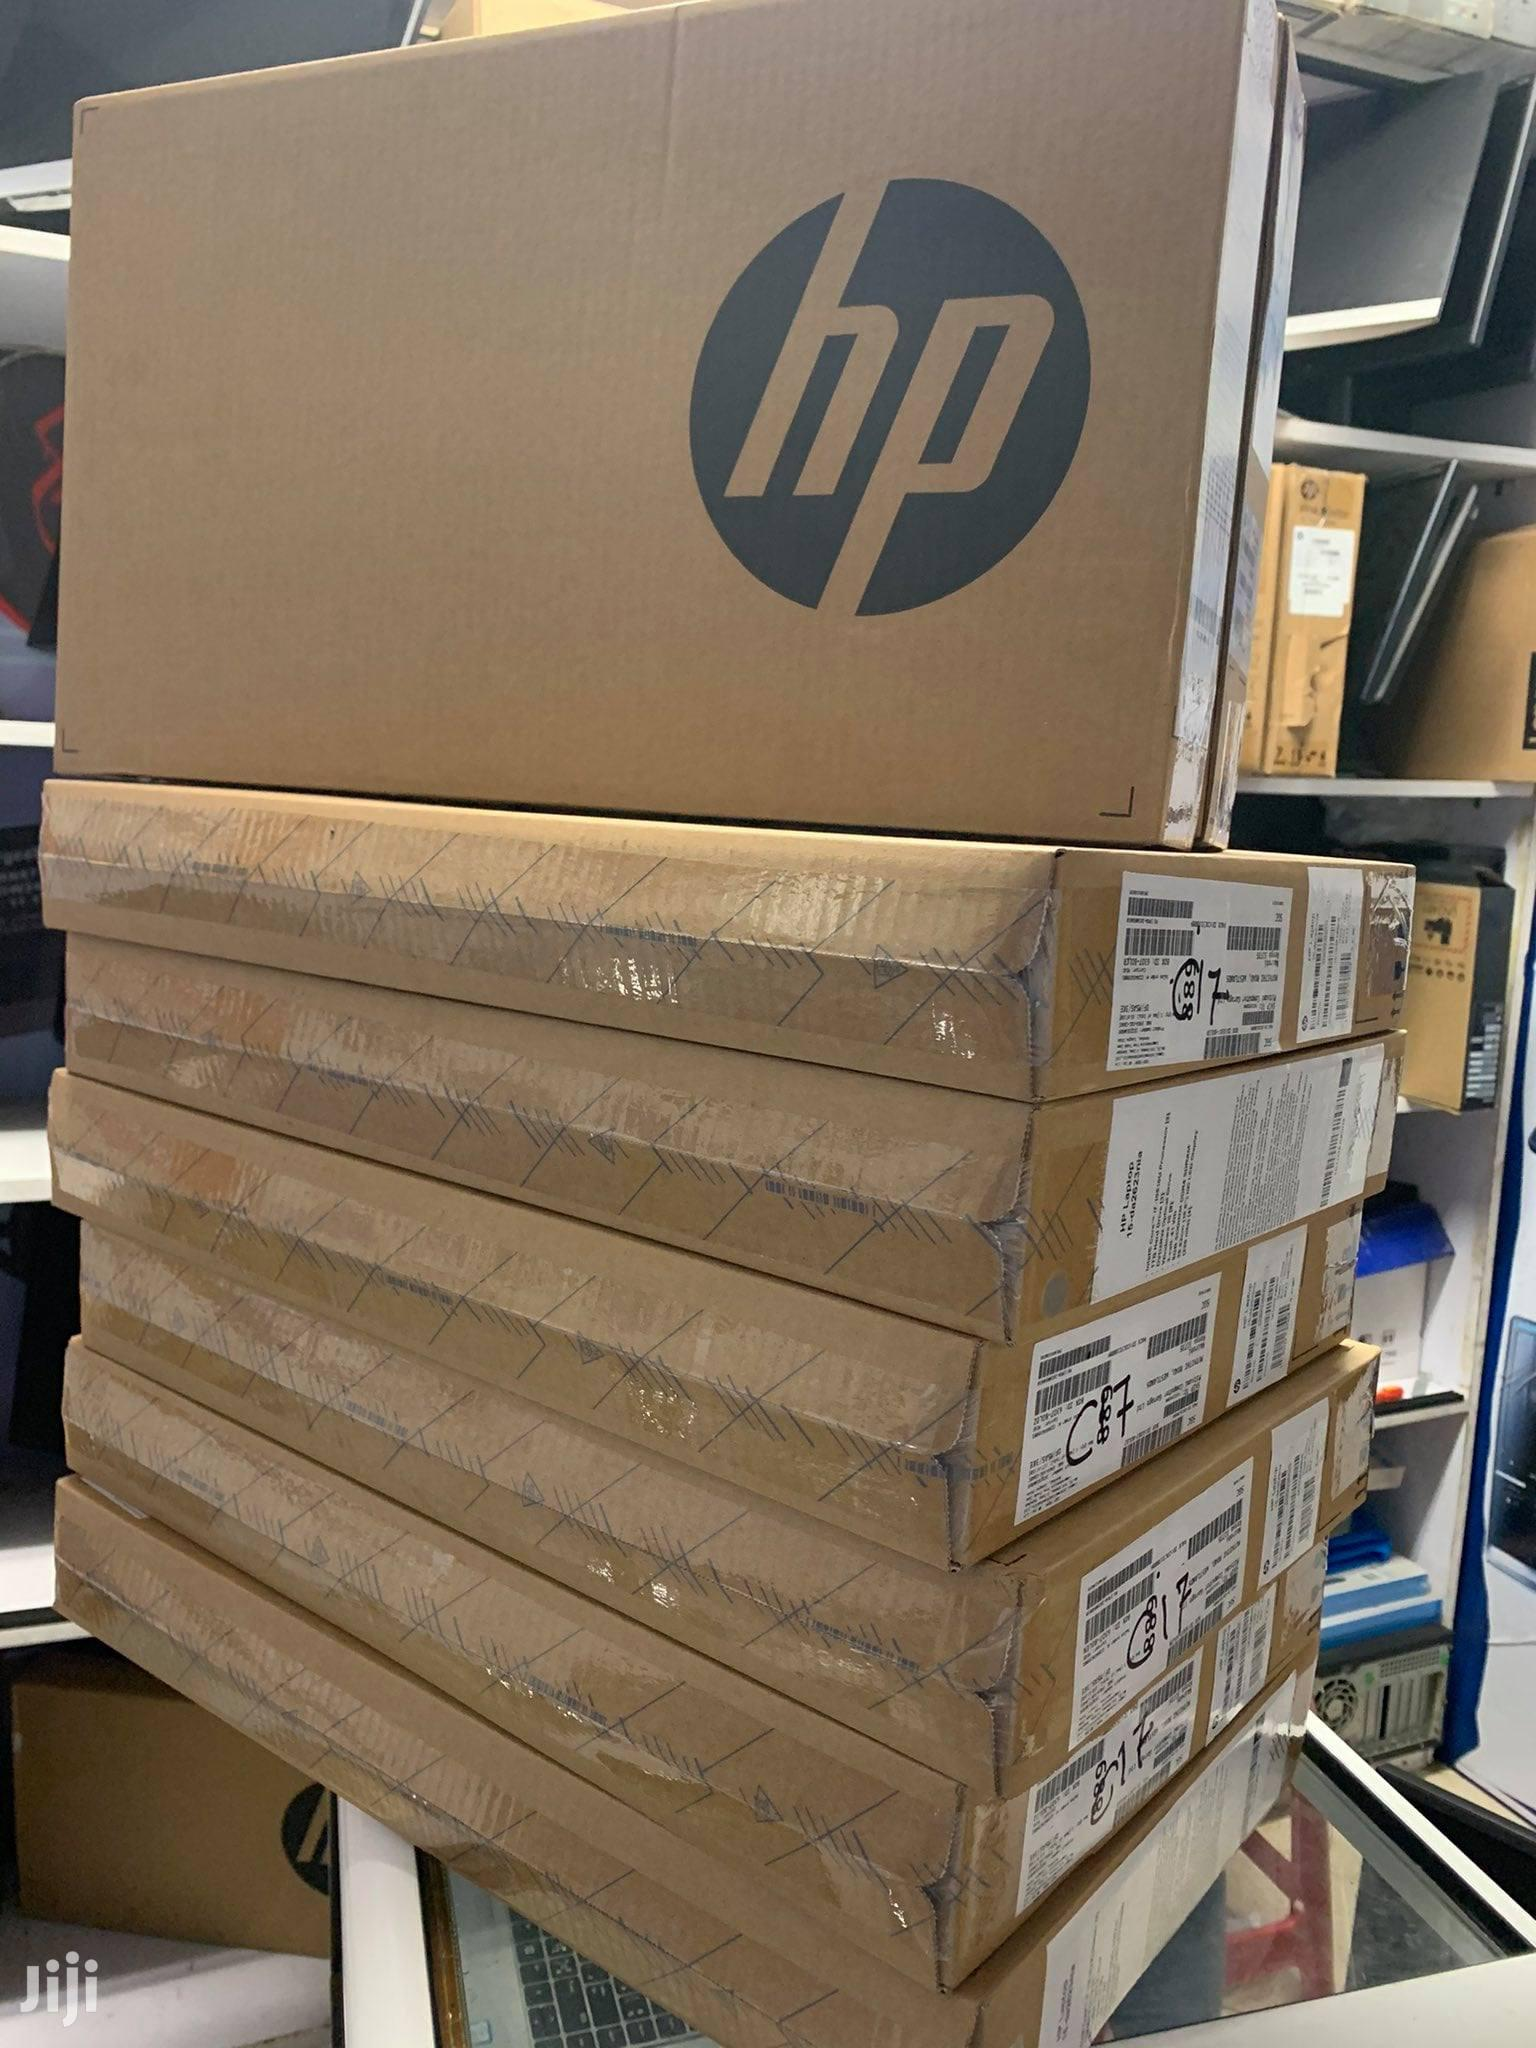 New Laptop HP 15-Ra003nia 8GB Intel Core I7 HDD 1T | Laptops & Computers for sale in Nairobi Central, Nairobi, Kenya